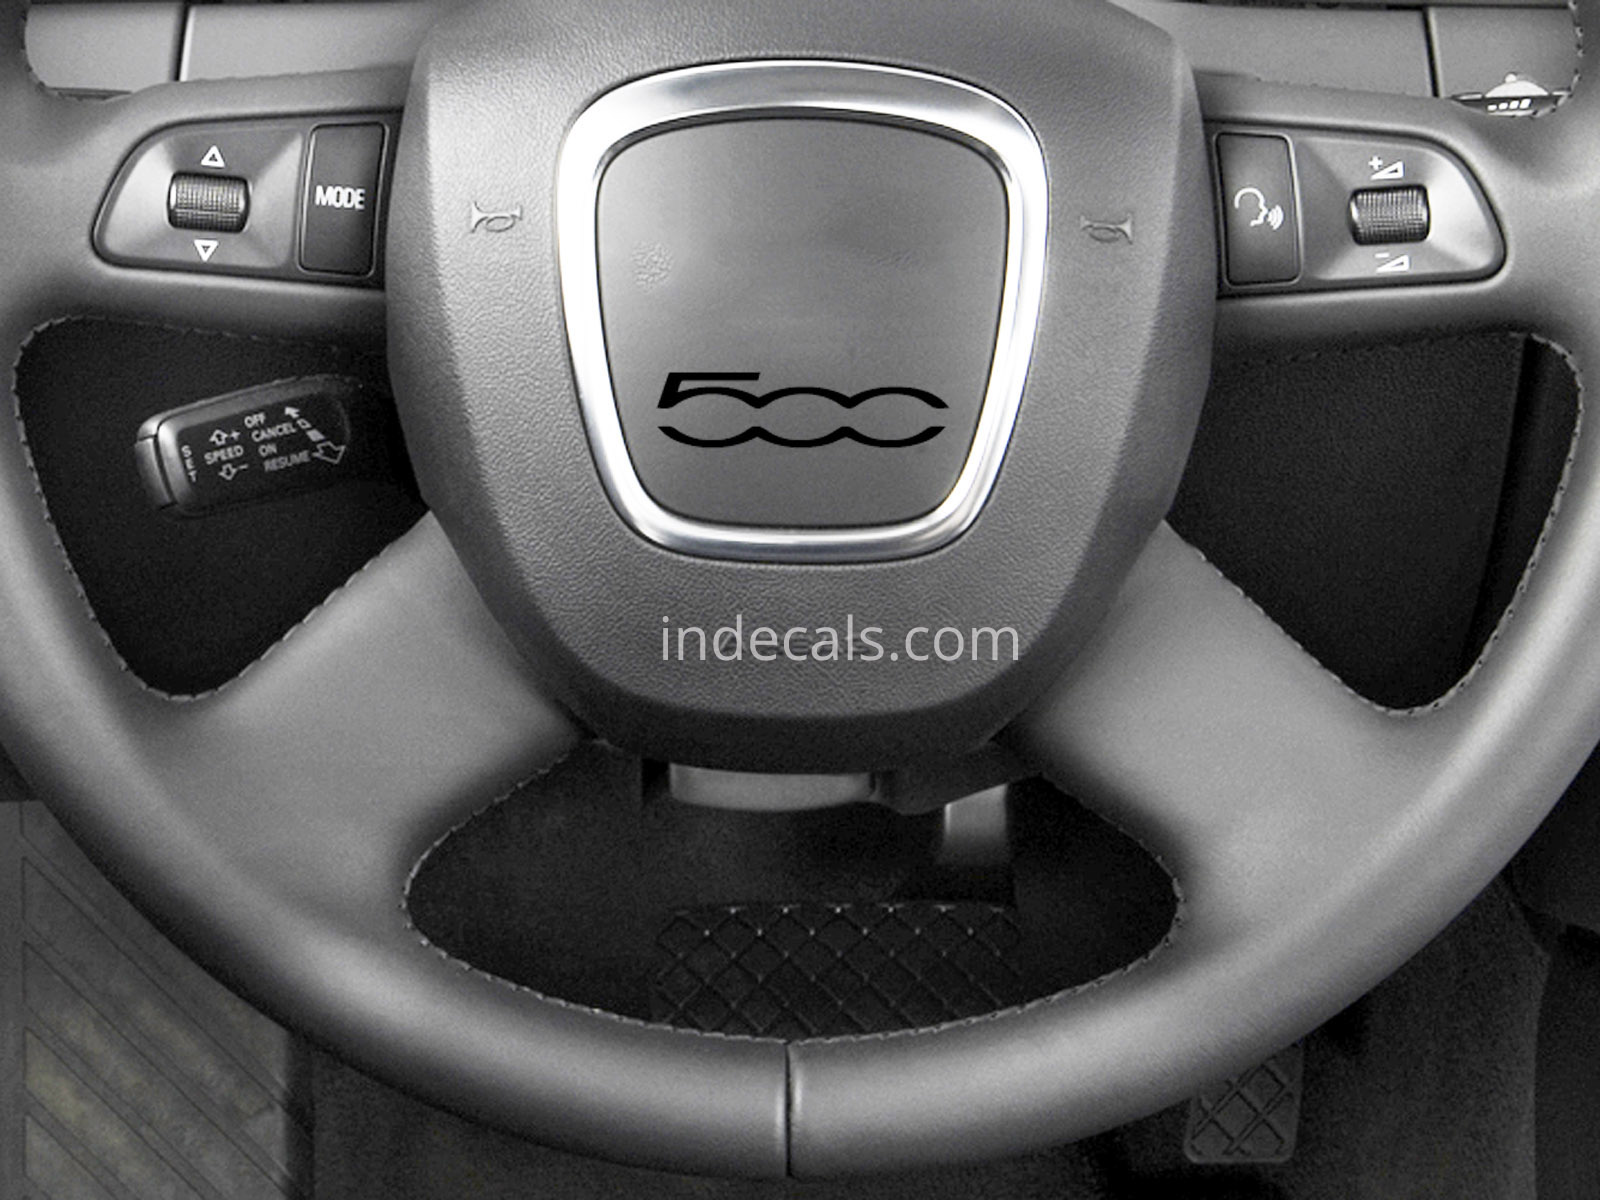 3 x Fiat 500 Stickers for Steering Wheel - Black